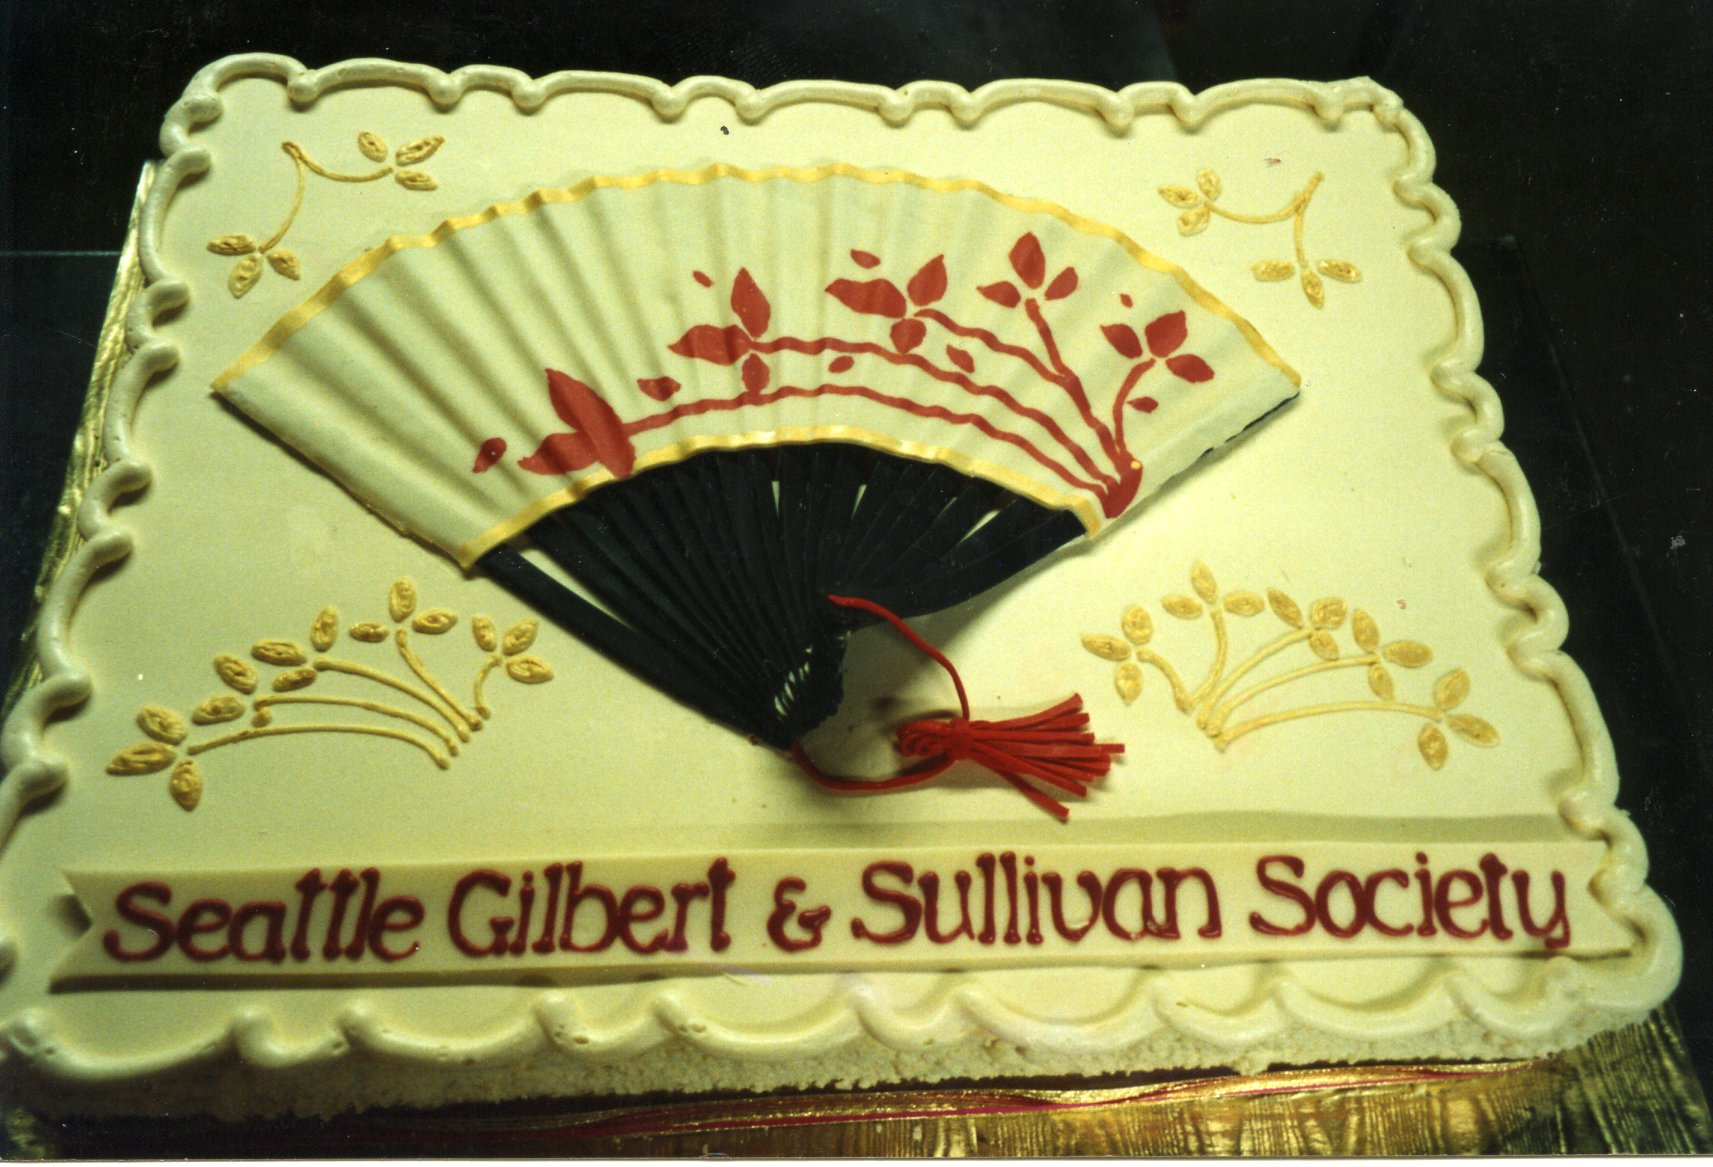 Gilbert and Sullivan cake